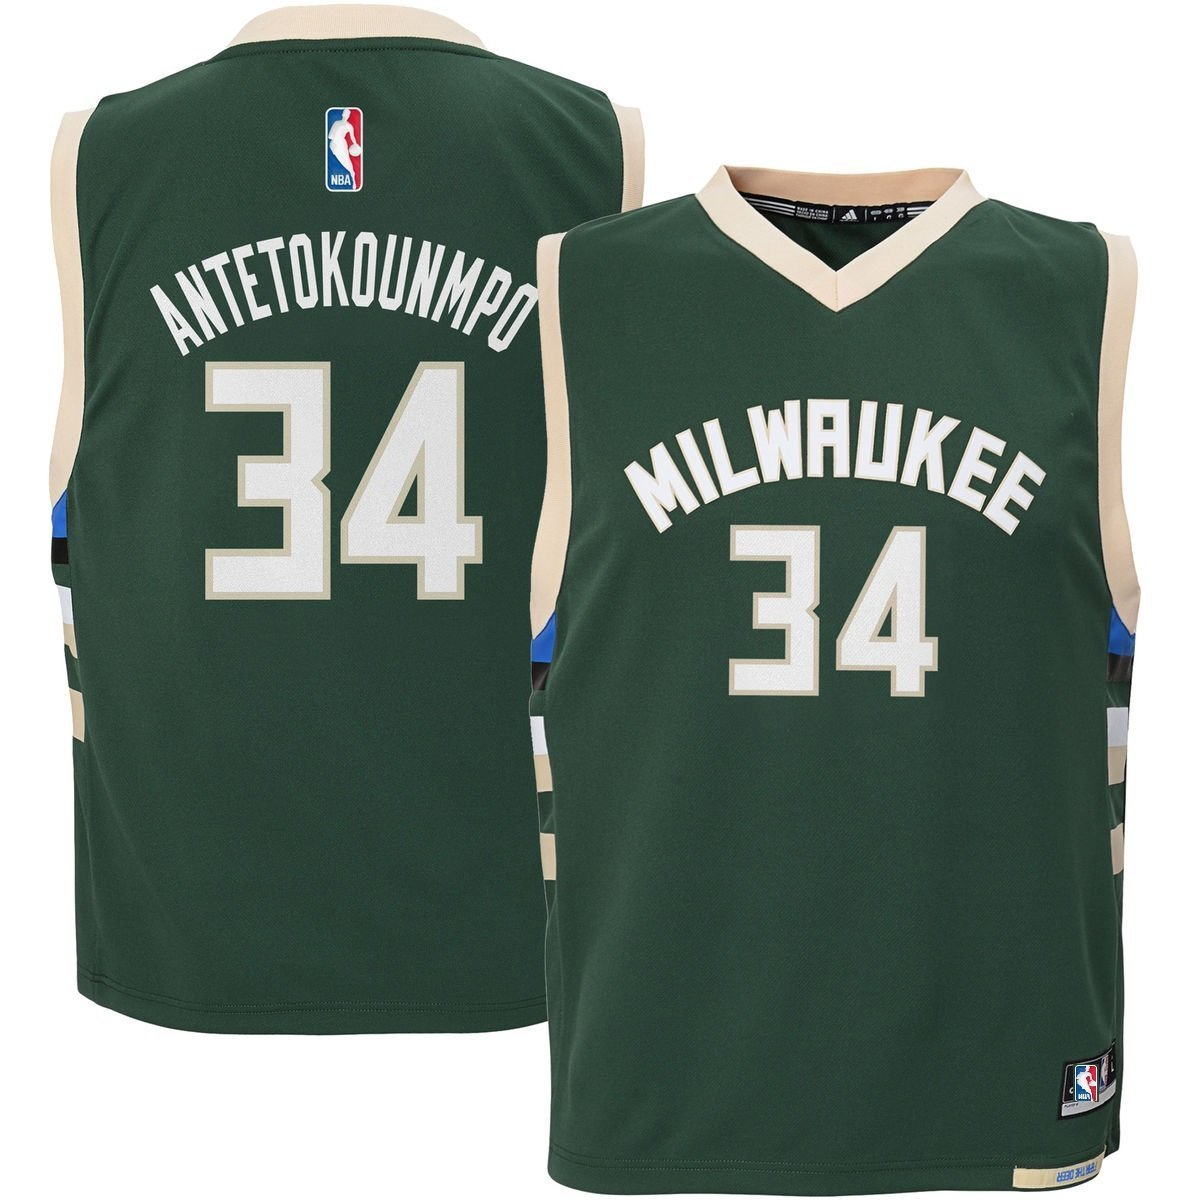 the best attitude 9b324 367ed Outerstuff Giannis Antetokounmpo #34 Milwaukee Bucks Youth Road Jersey Green